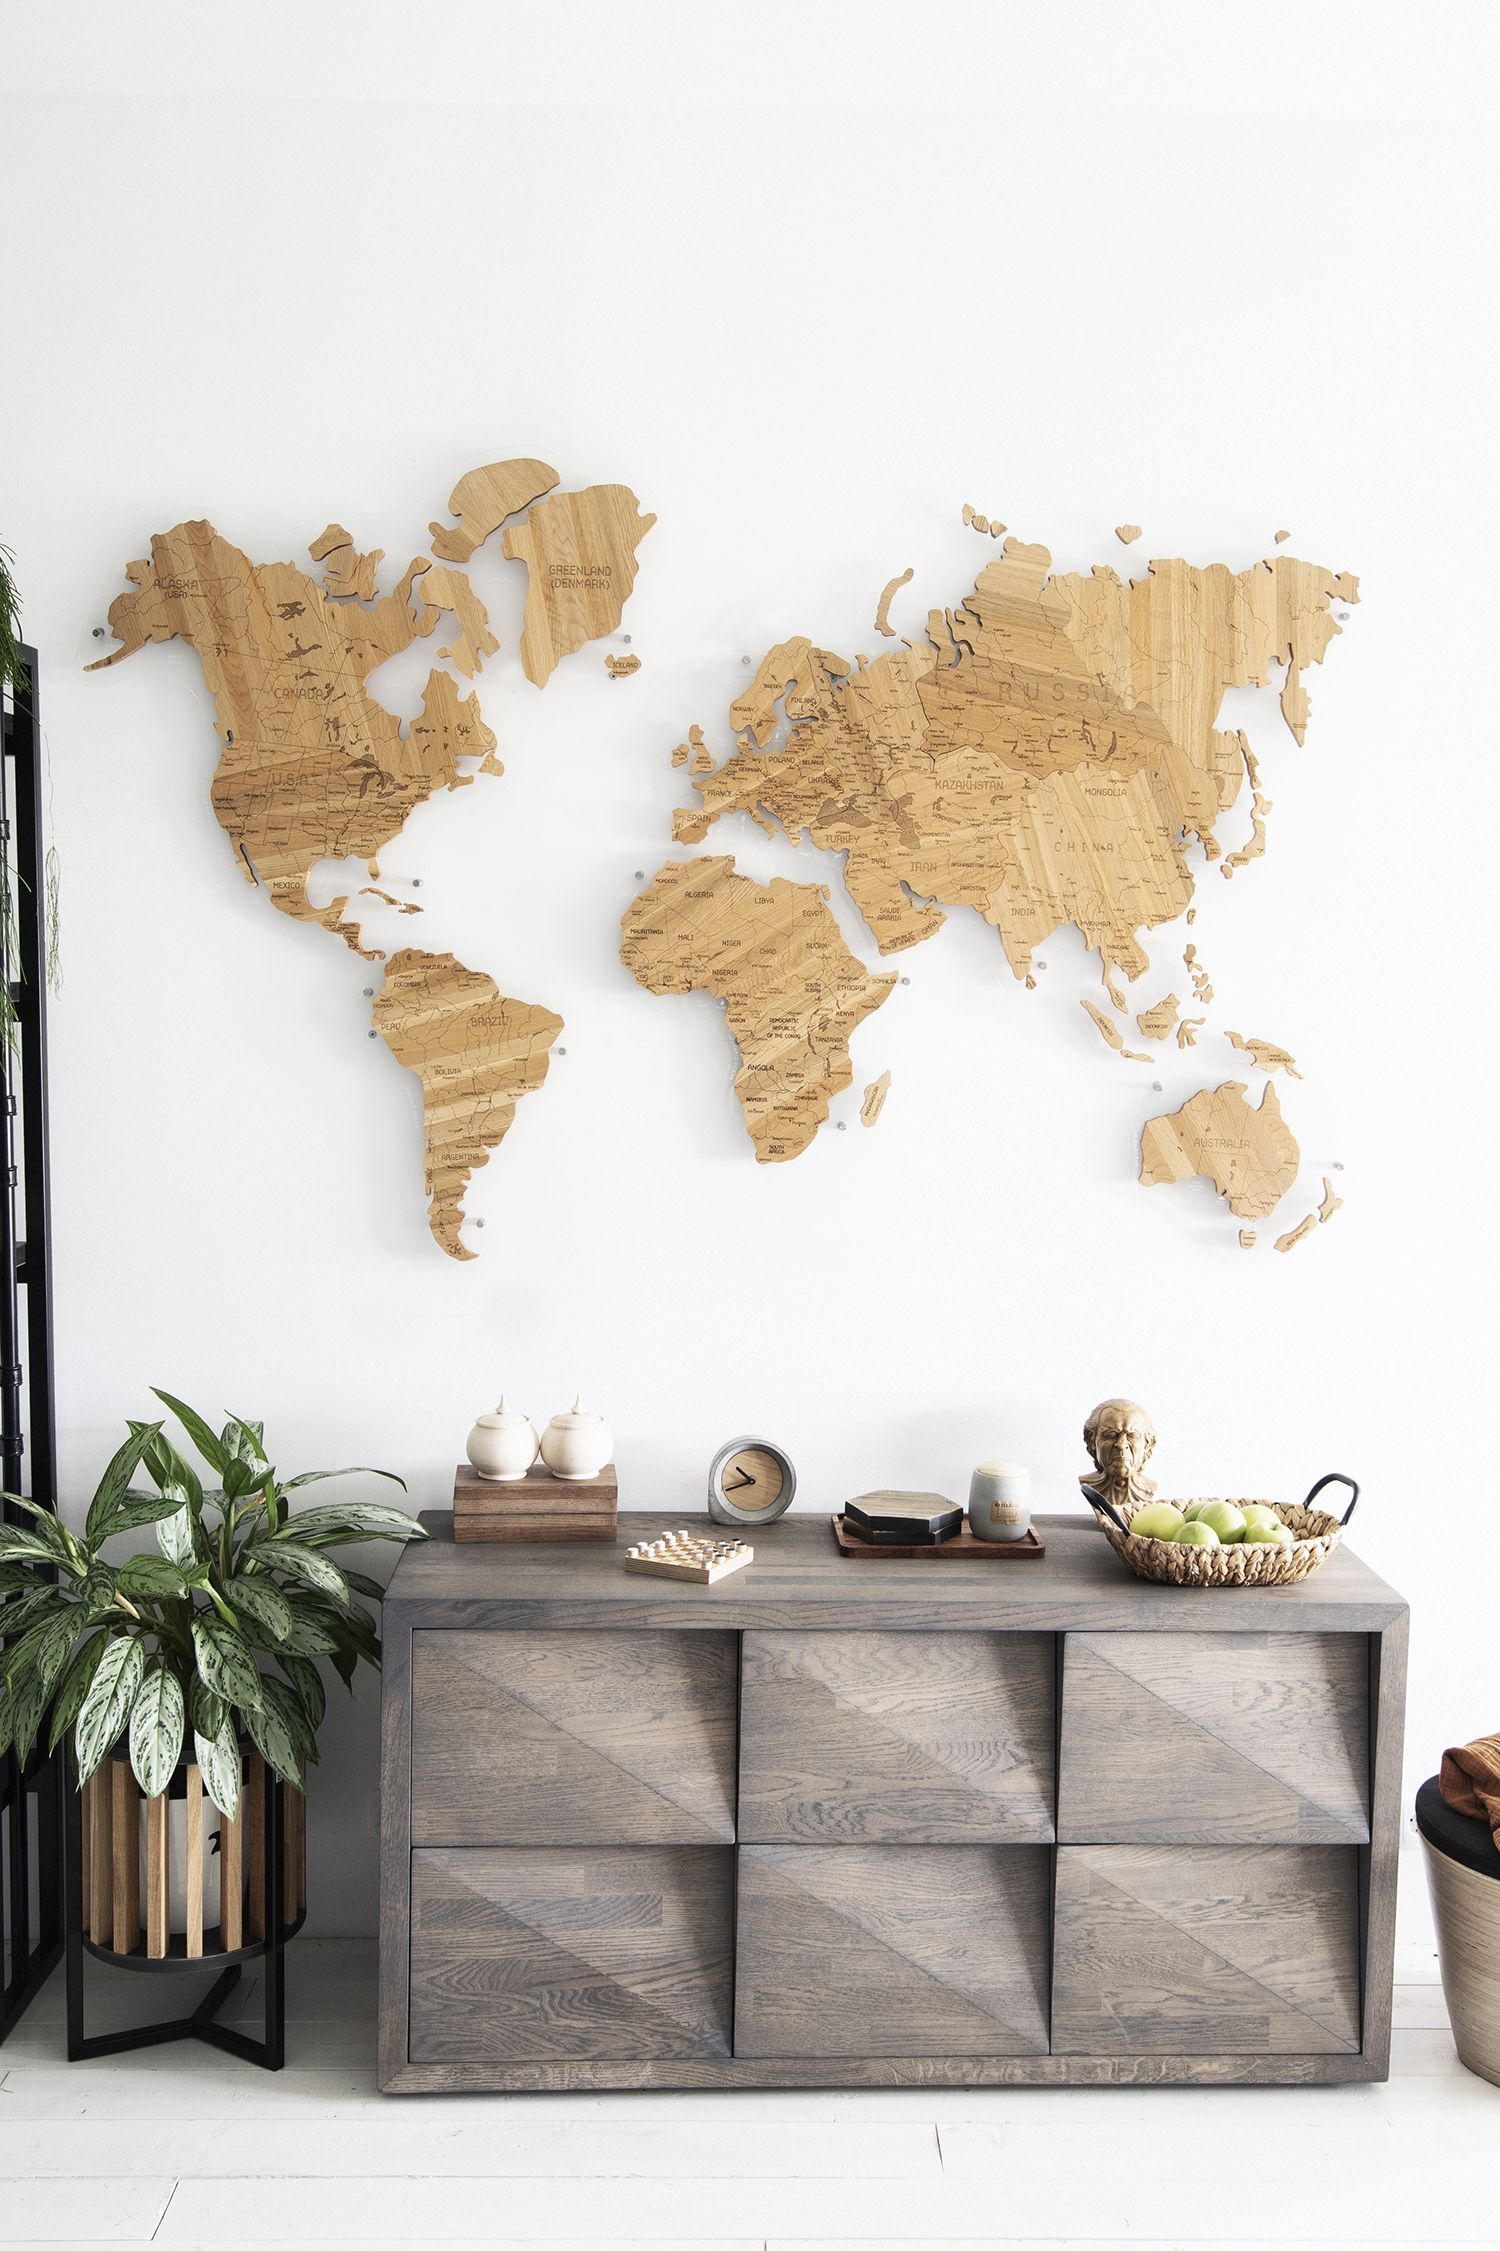 Real Large Wooden World Map By Gadenmap Push Pin Travel Map For